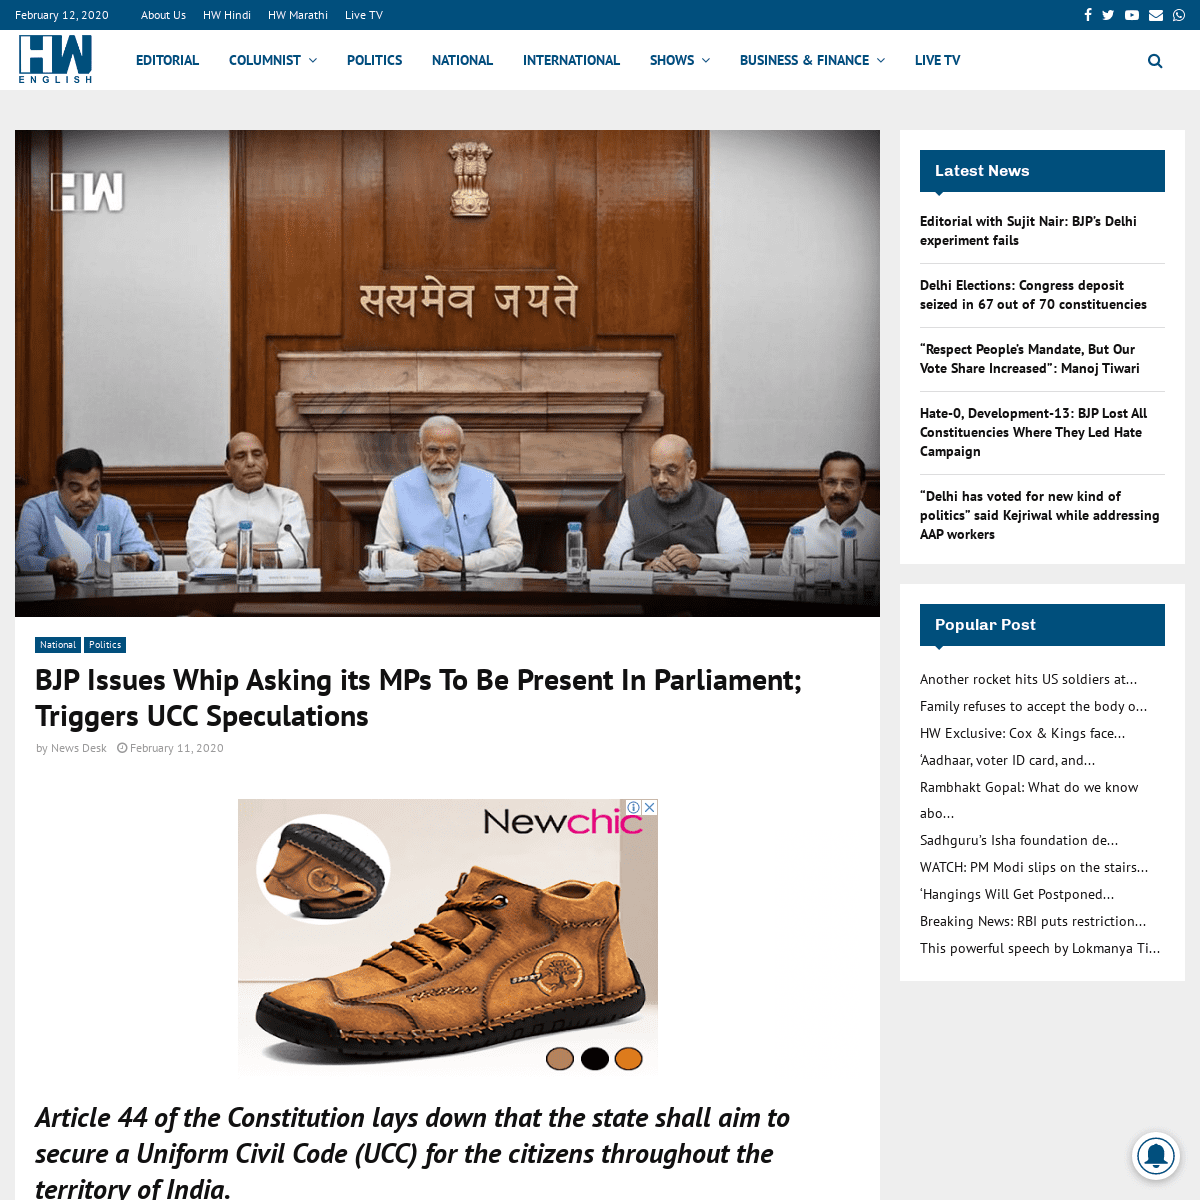 ArchiveBay.com - hwnews.in/news/national-news/bjp-issues-whip-asking-mps-present-parliament-triggers-ucc-speculations/125385 - BJP Issues Whip Asking its MPs To Be Present In Parliament; Triggers UCC Speculations - HW English